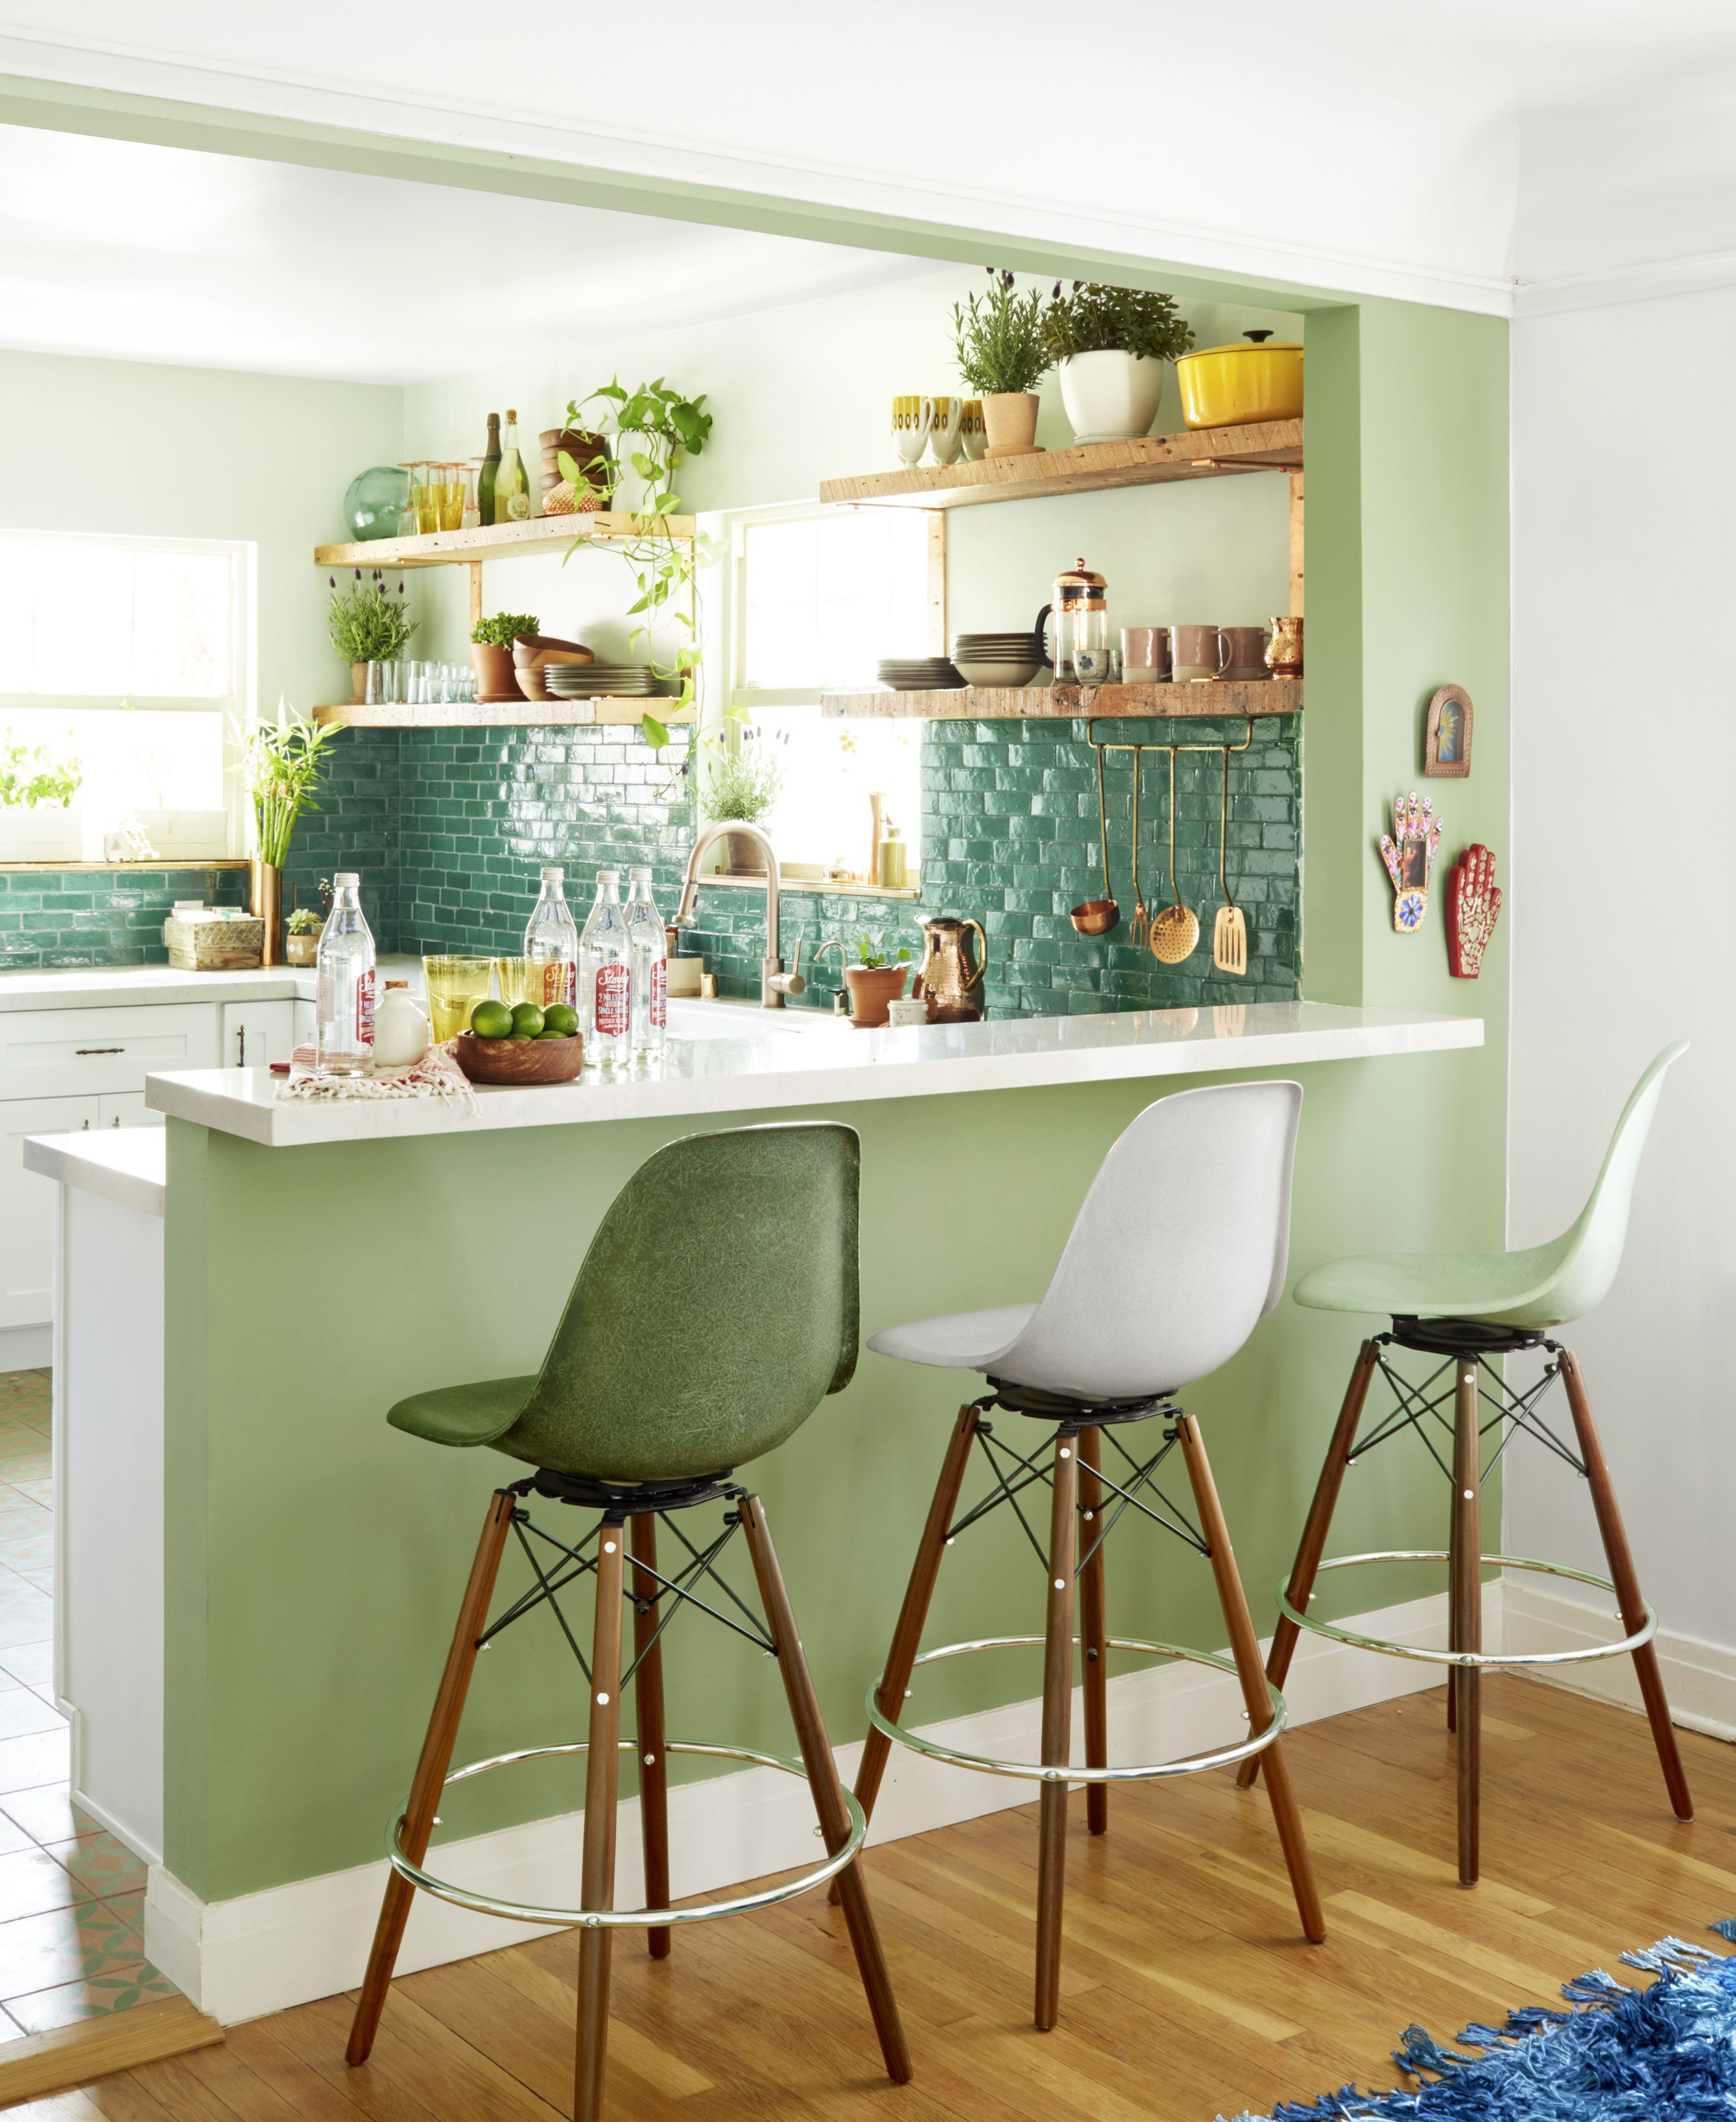 Kitchen Bar Stools072